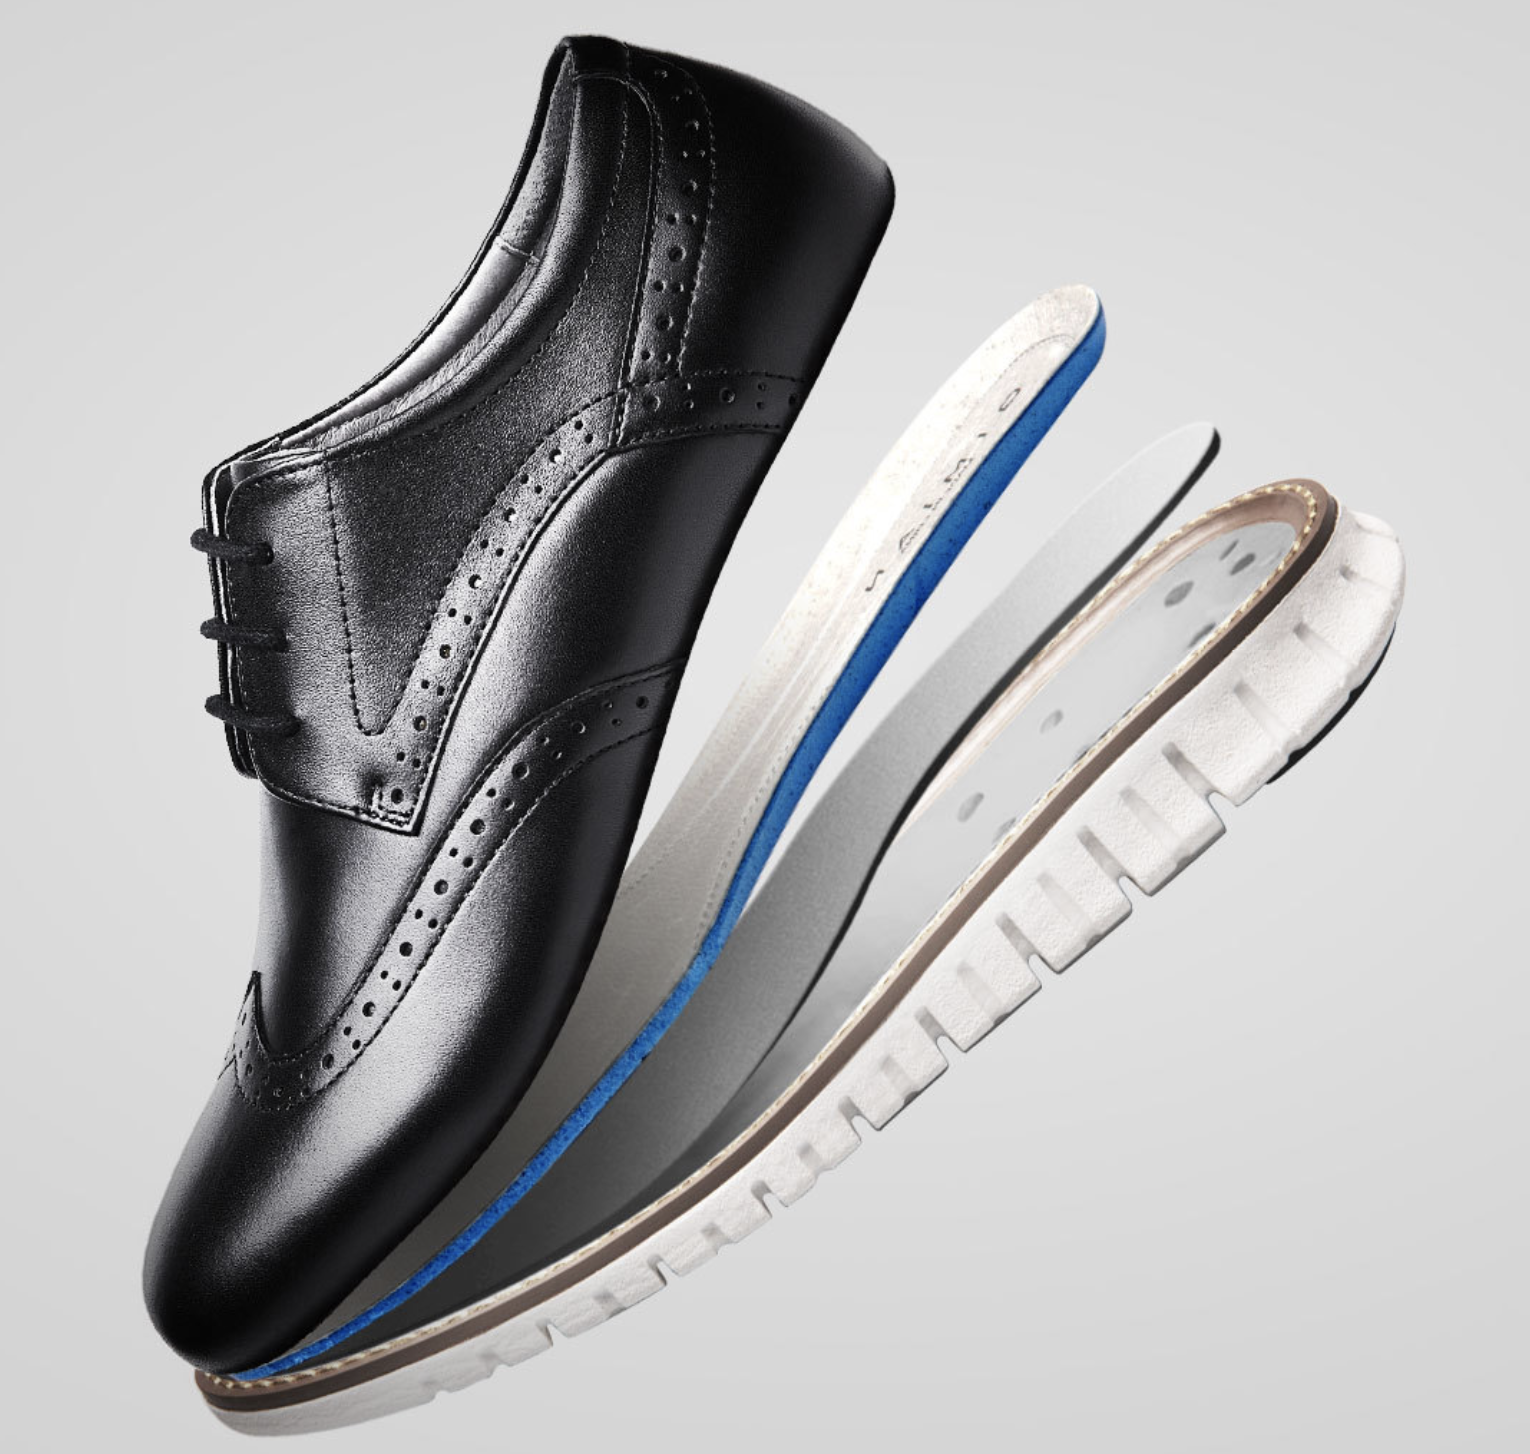 A bit more elegant shoes from Xiaomi and Qimian